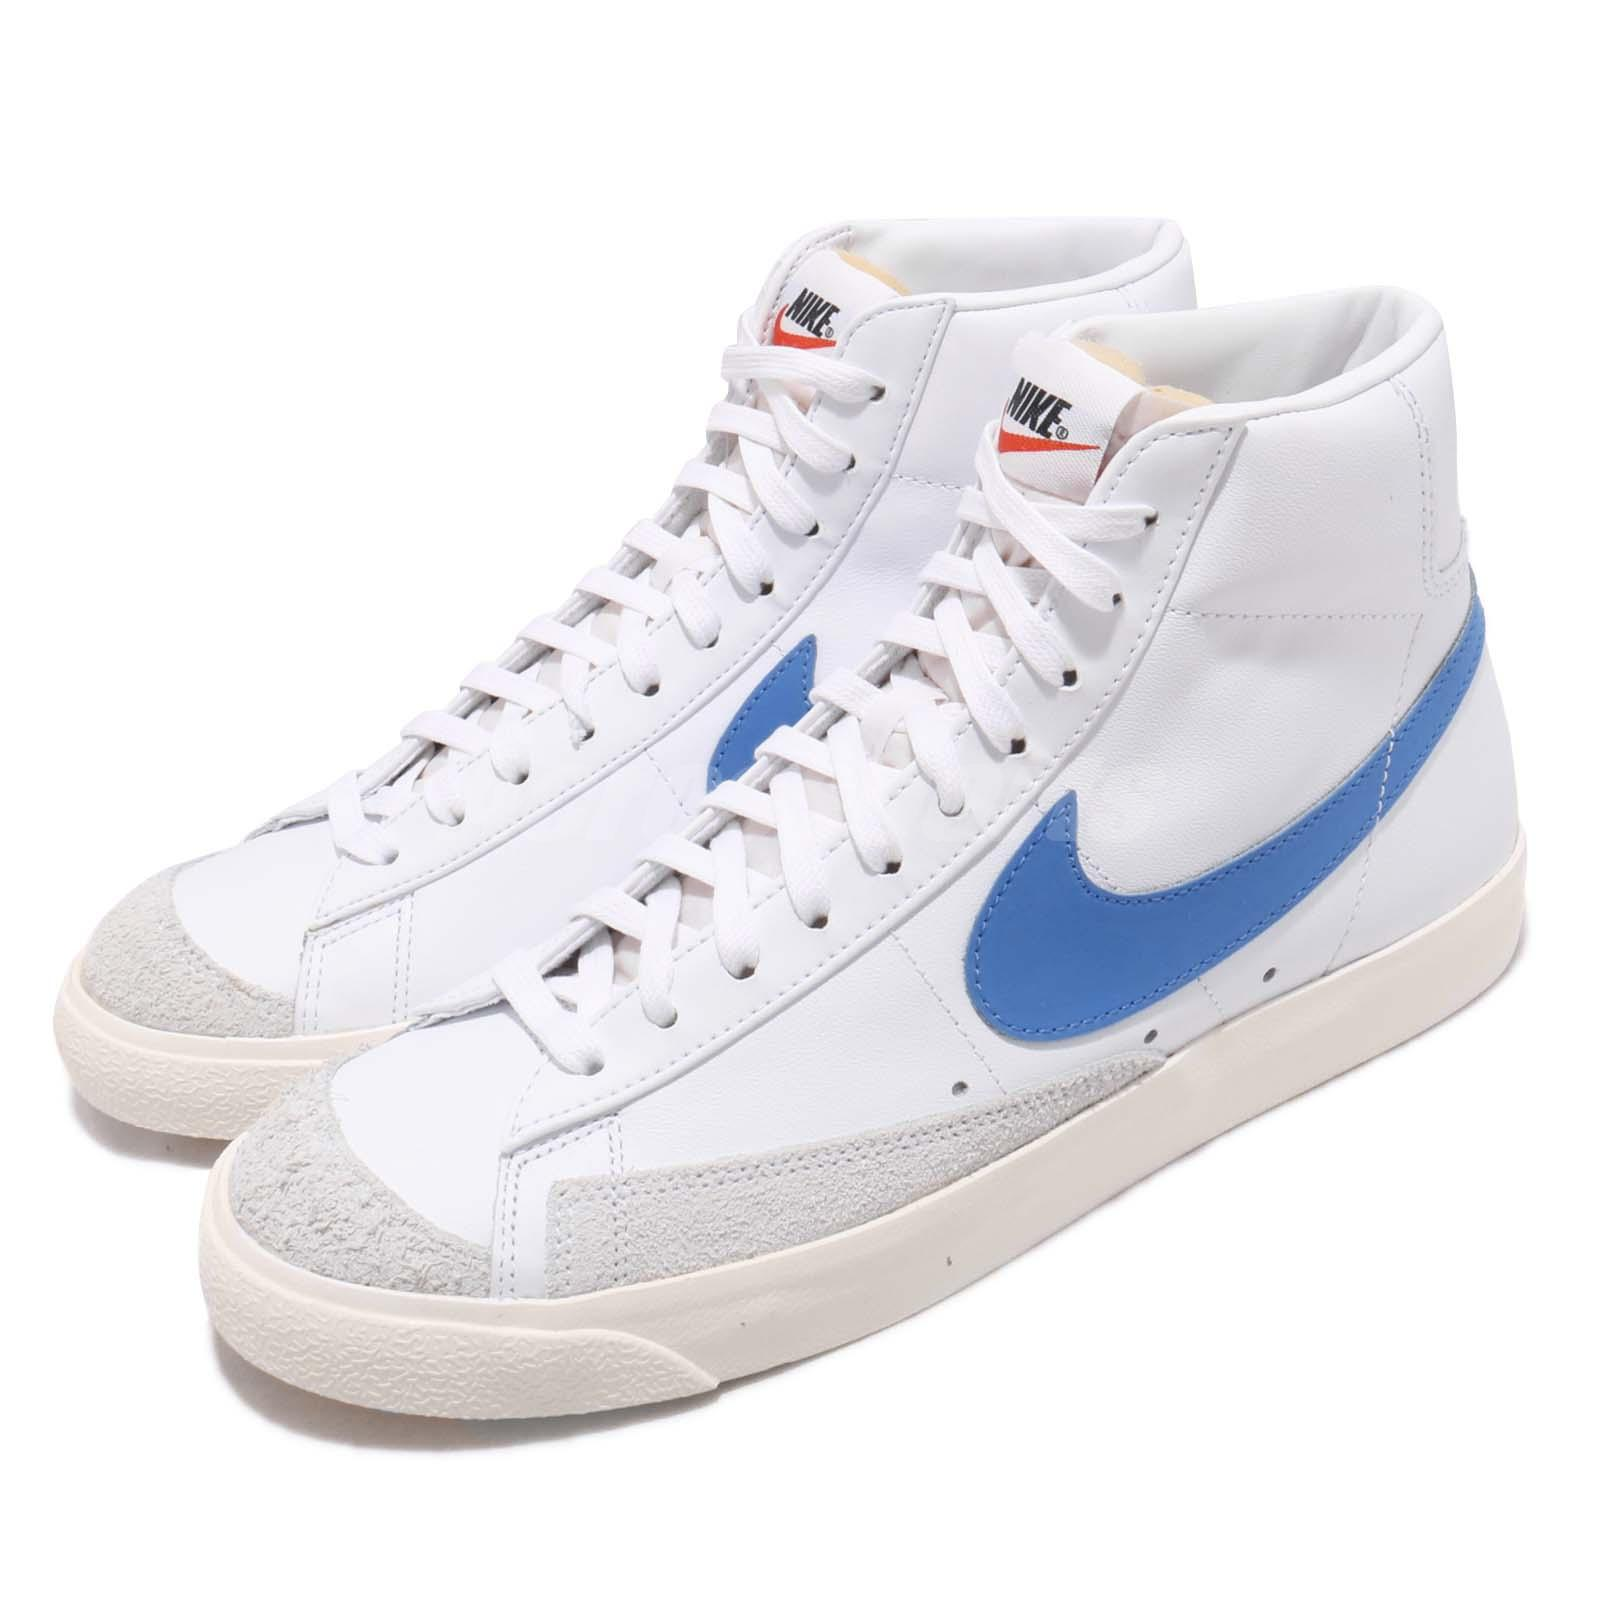 timeless design 2bbe3 d4f81 Nike Blazer Mid 77 VNTG Sail White Pacific Blue Vintage Mens Shoes ...